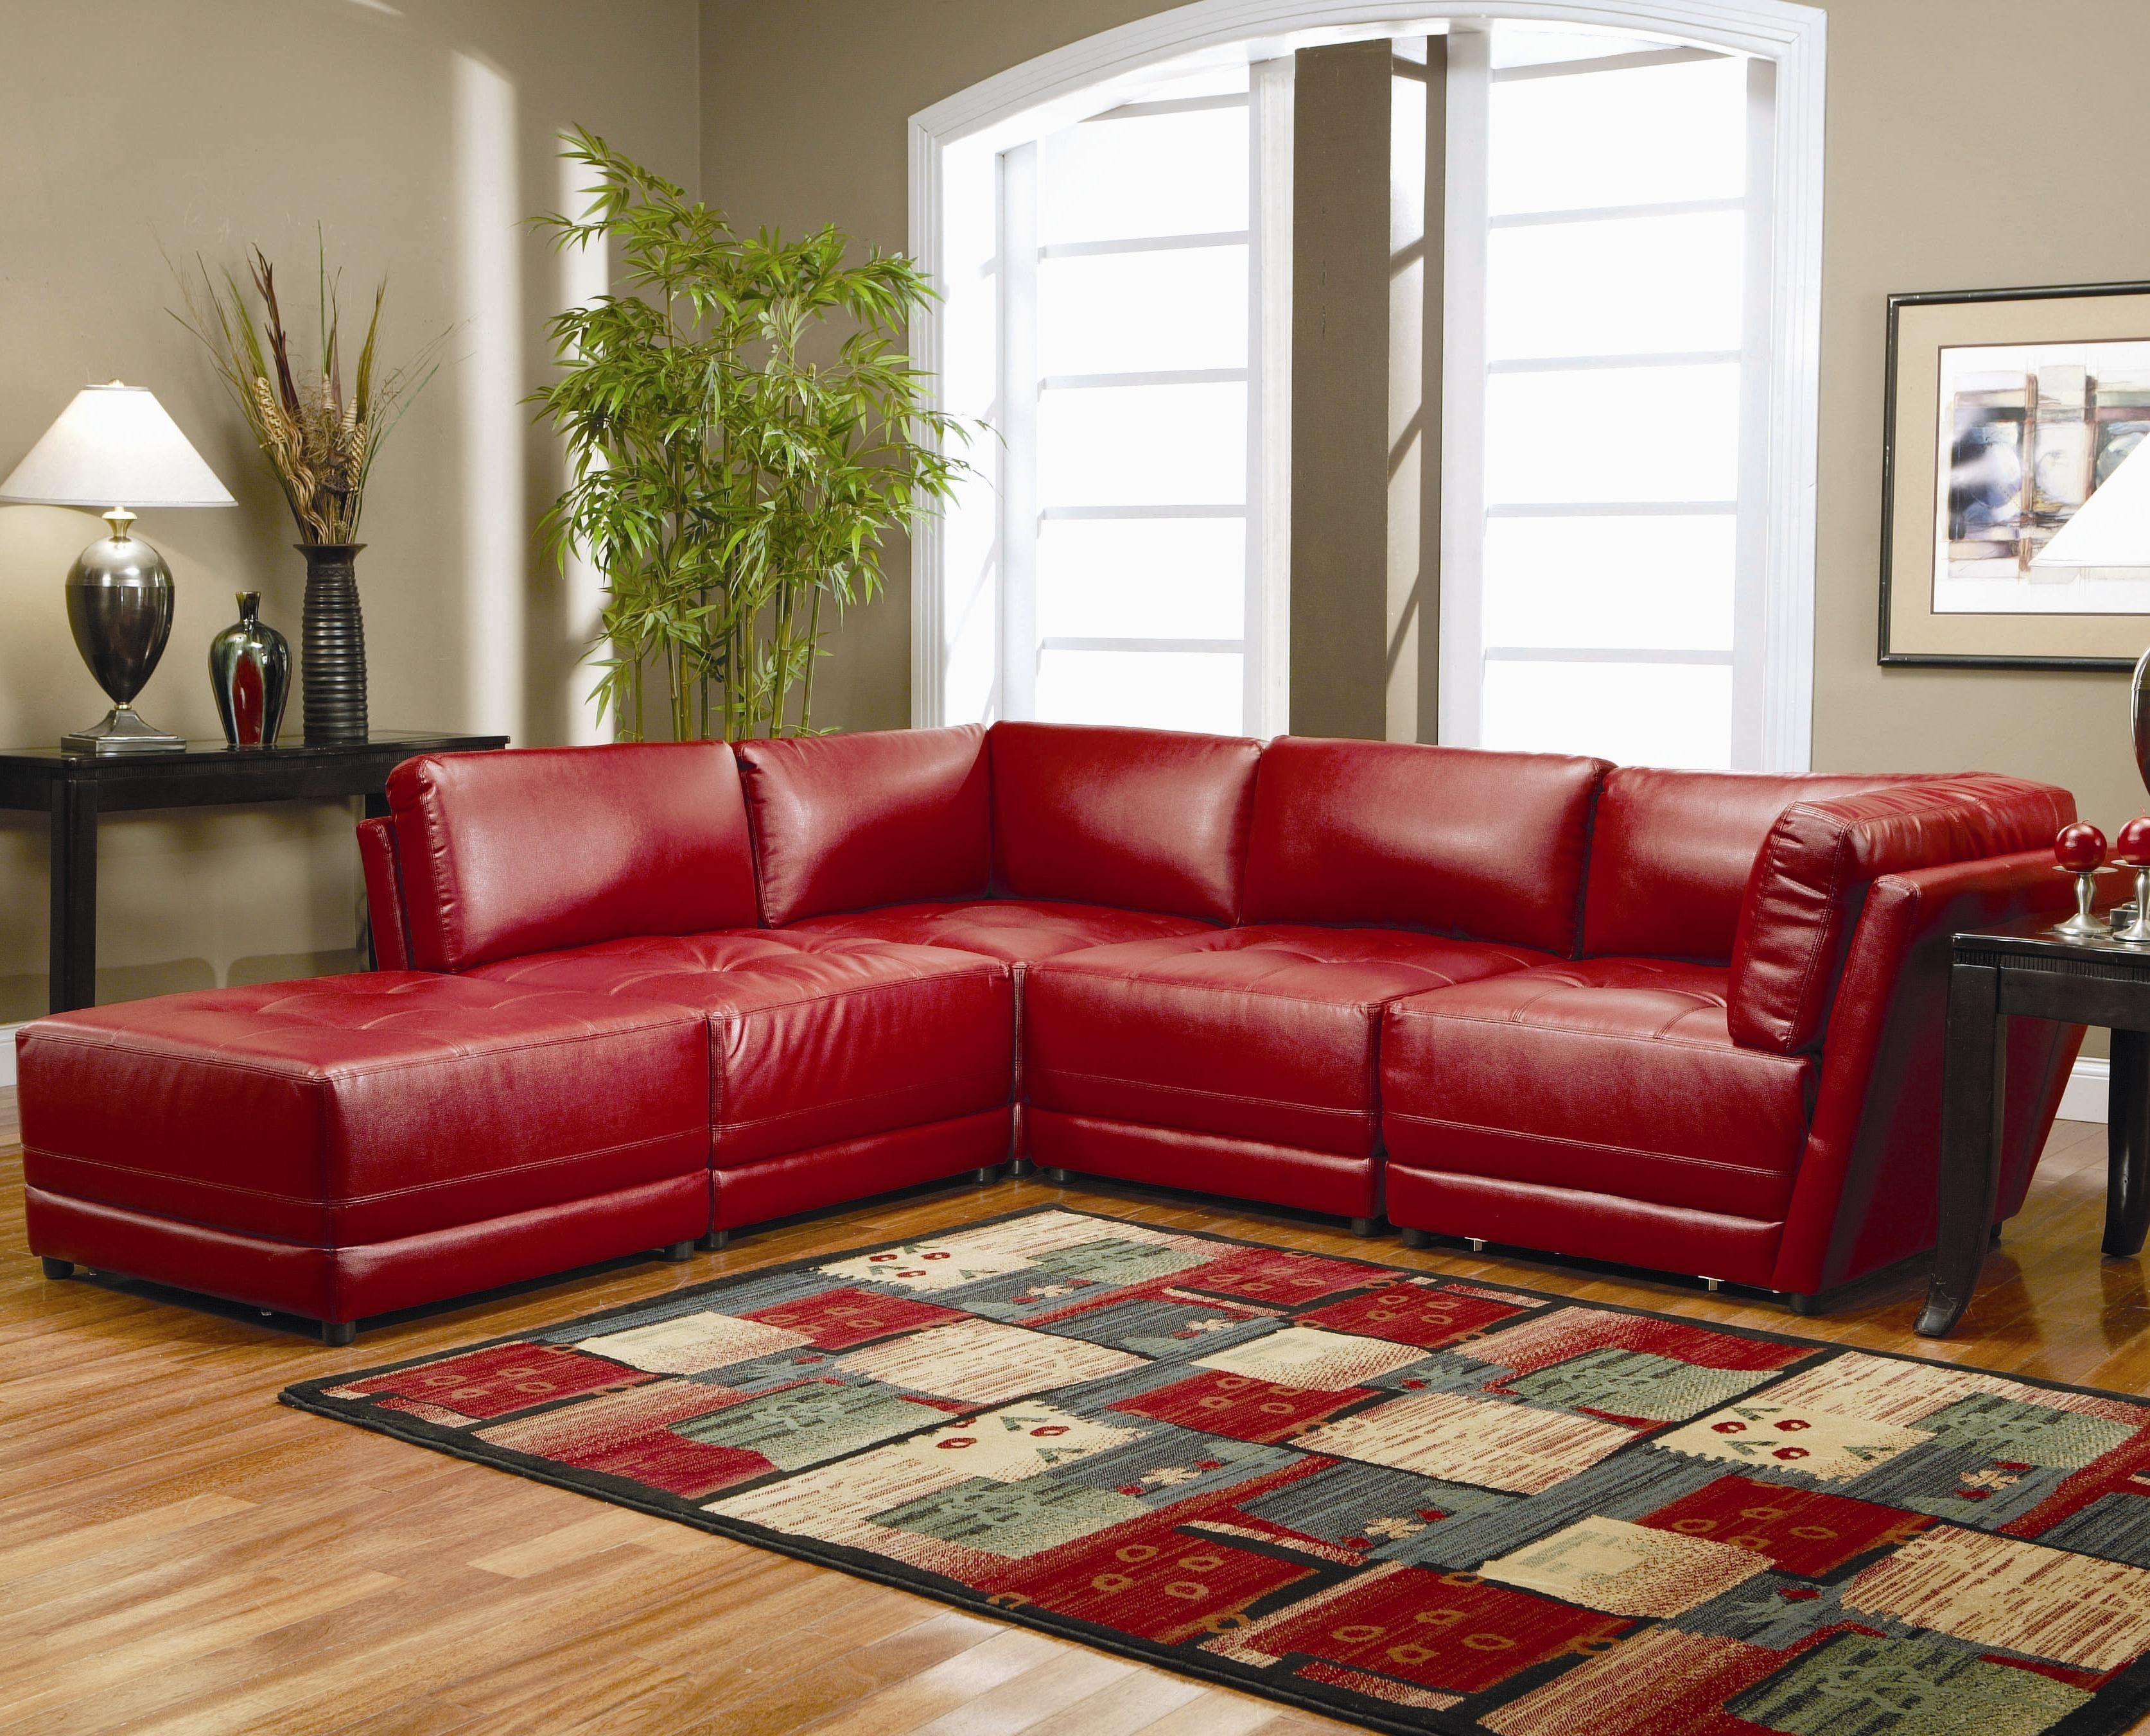 Warm Red Leather Sectional L Shaped Sofa Design Ideas For Living with regard to Small Red Leather Sectional Sofas (Image 15 of 15)